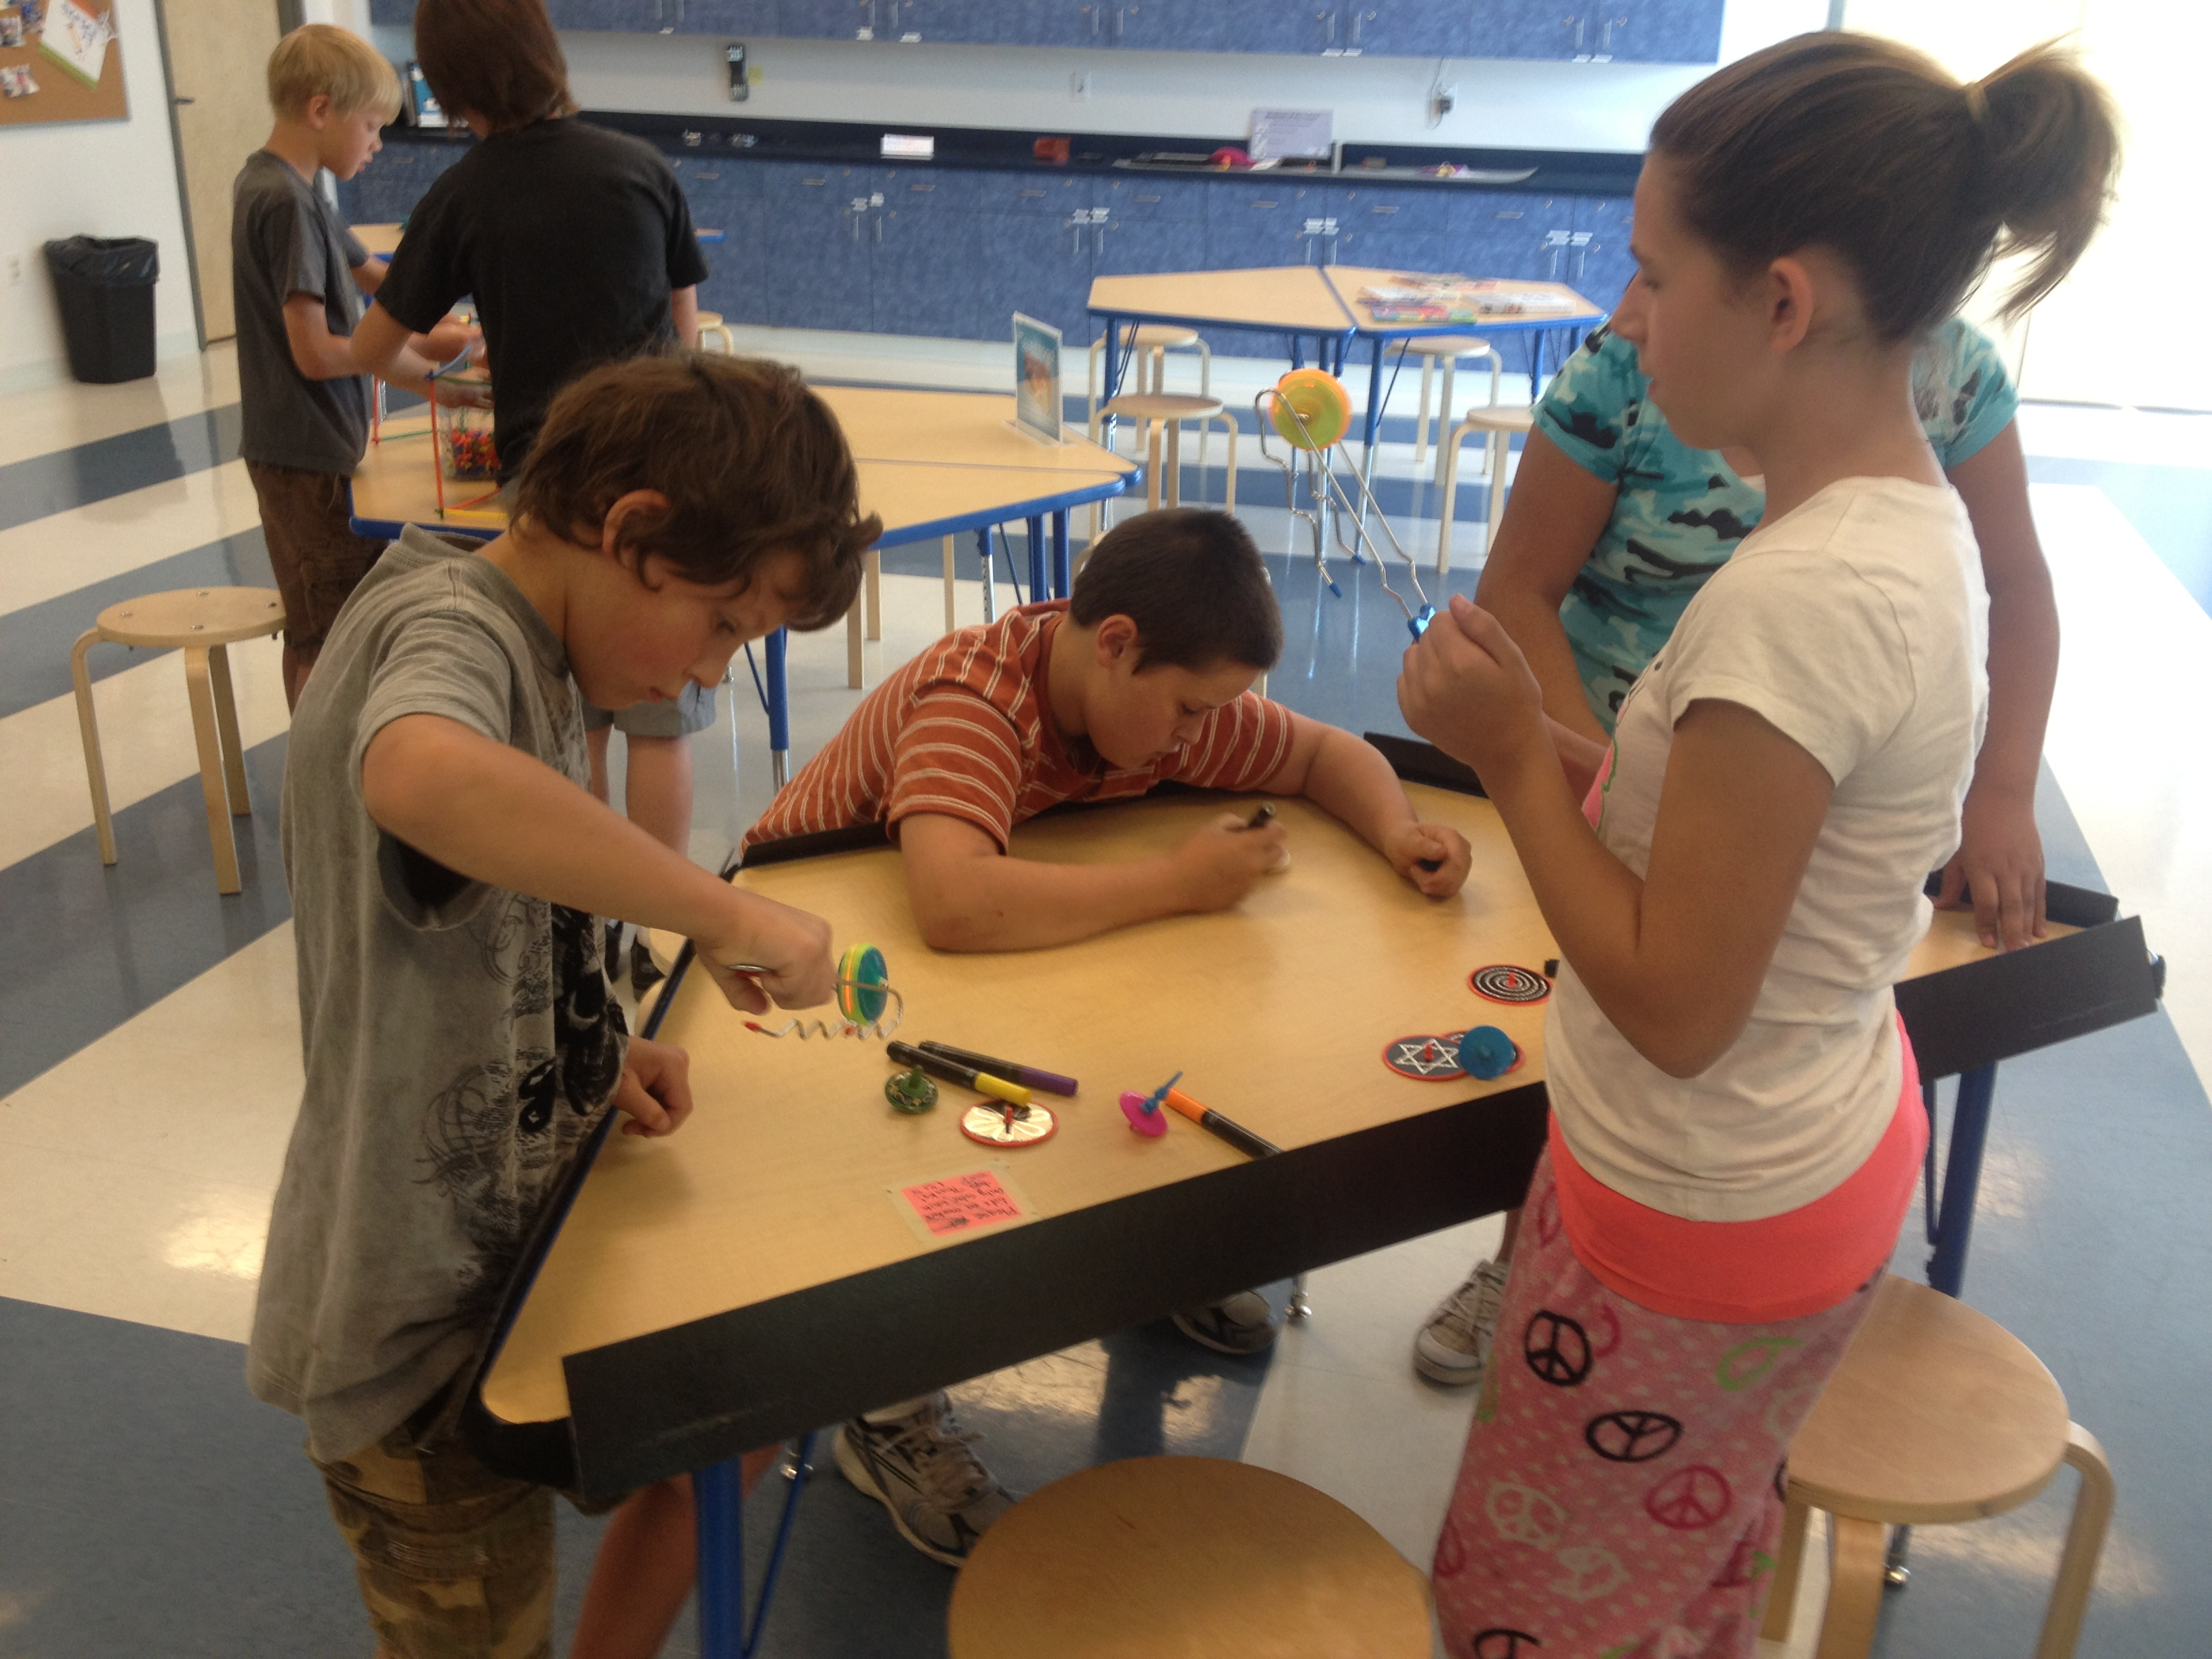 Children participating in hands-on invention activities.